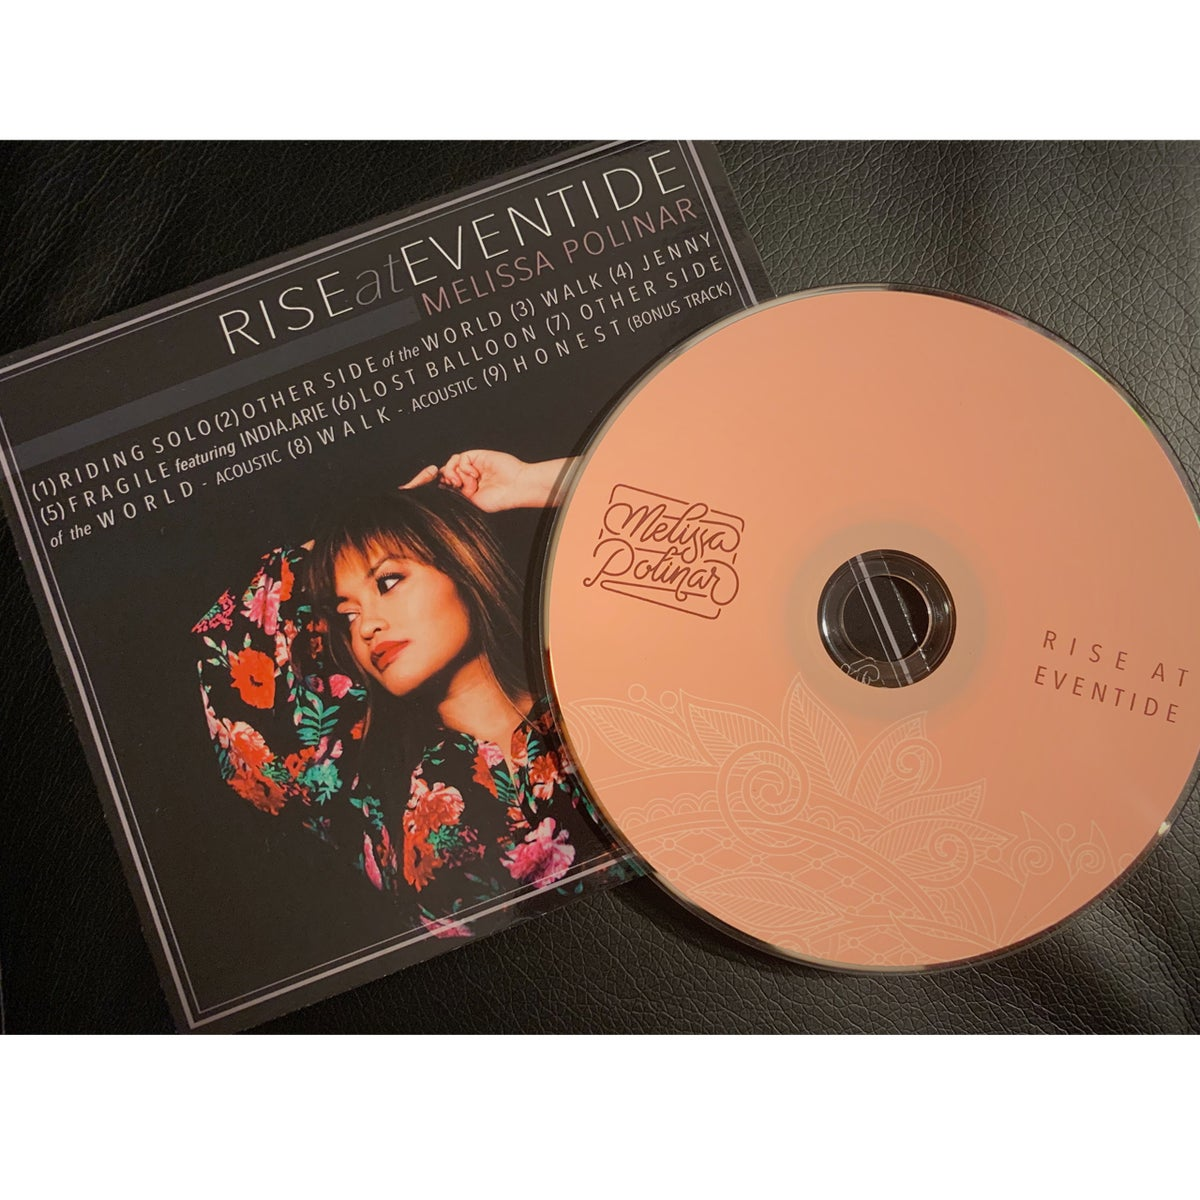 Image of Rise At Eventide (CD)